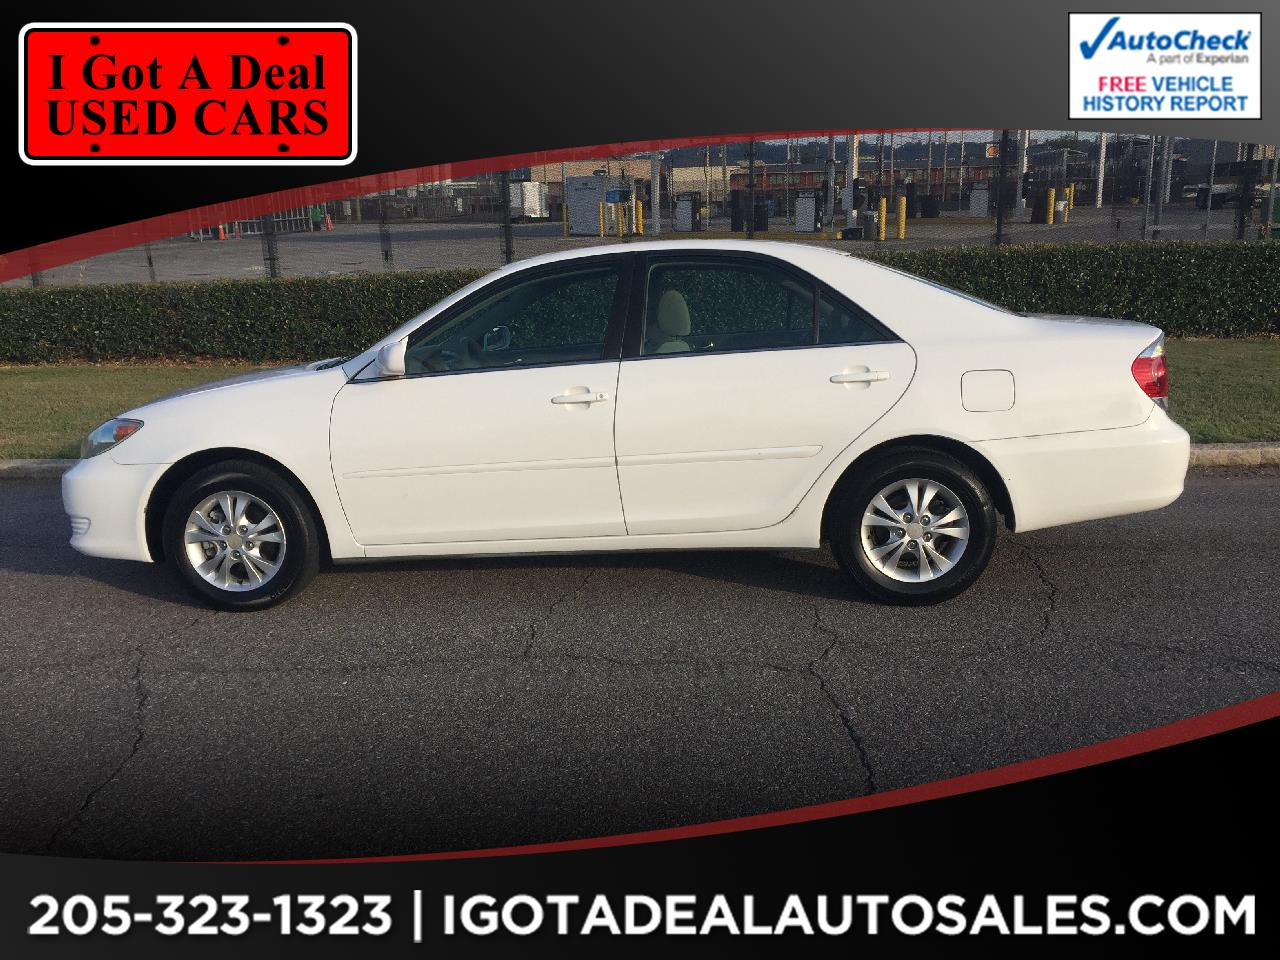 2006 Toyota Camry 4dr Sdn LE V6 Auto (Natl)